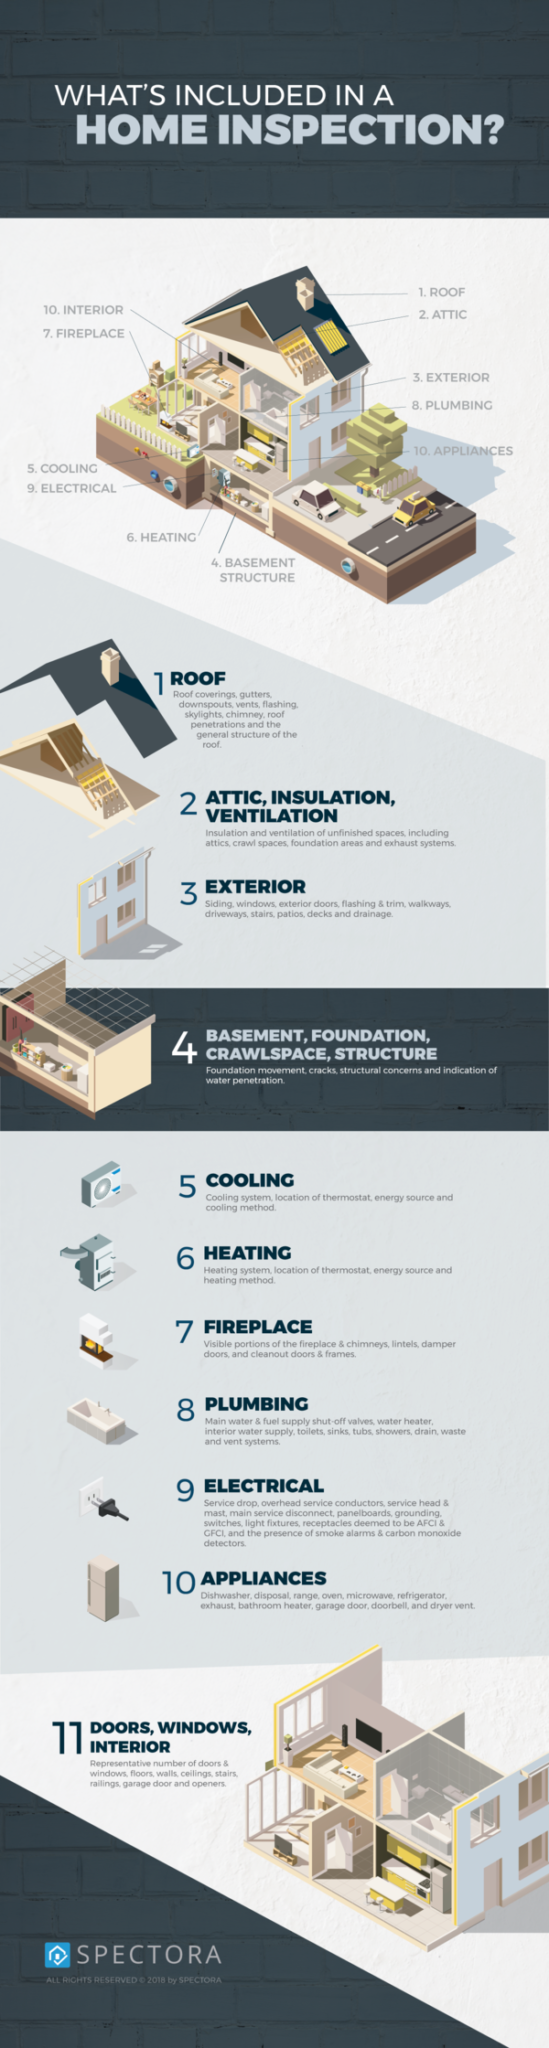 What's Included in a Home Inspection Infographic